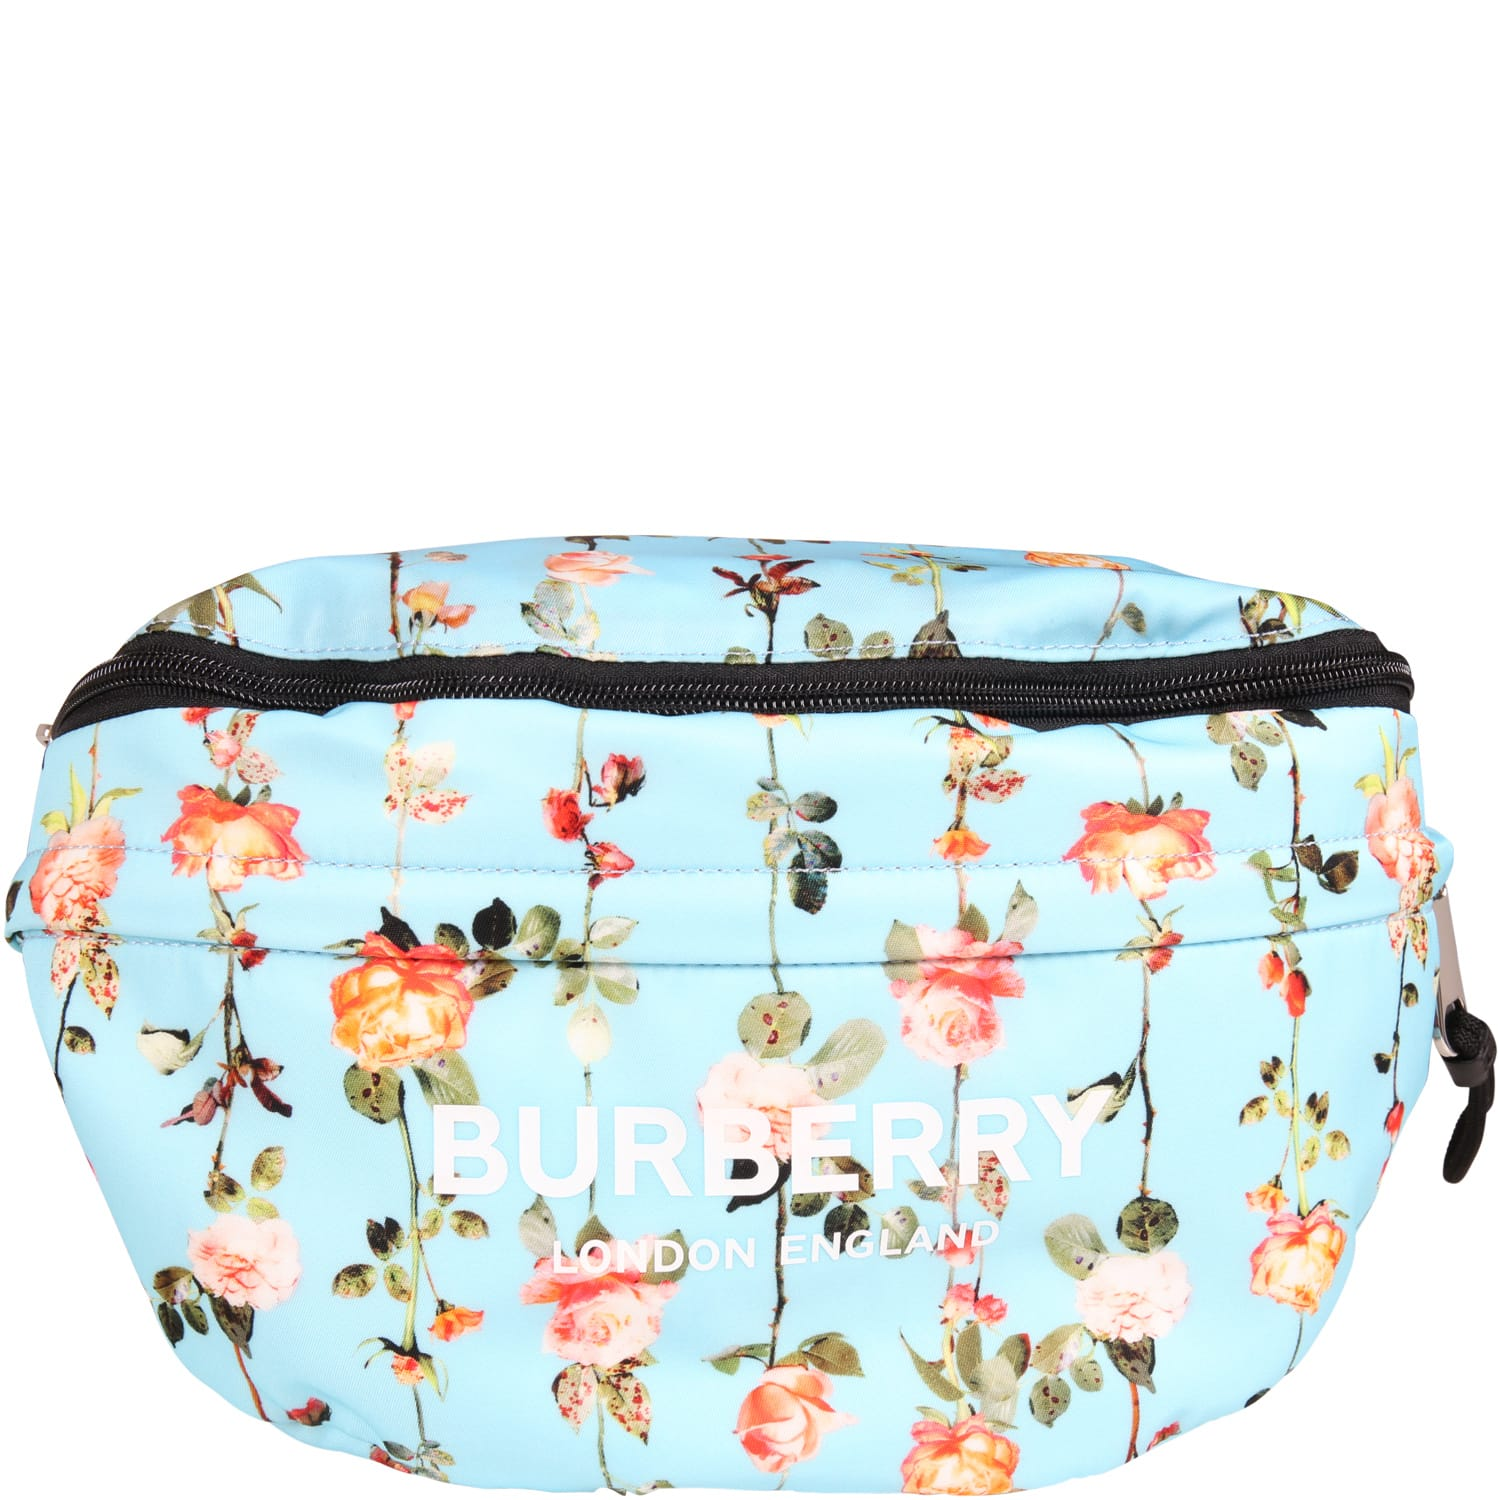 Burberry Light Blue Bum Bag For Girl With Flowers